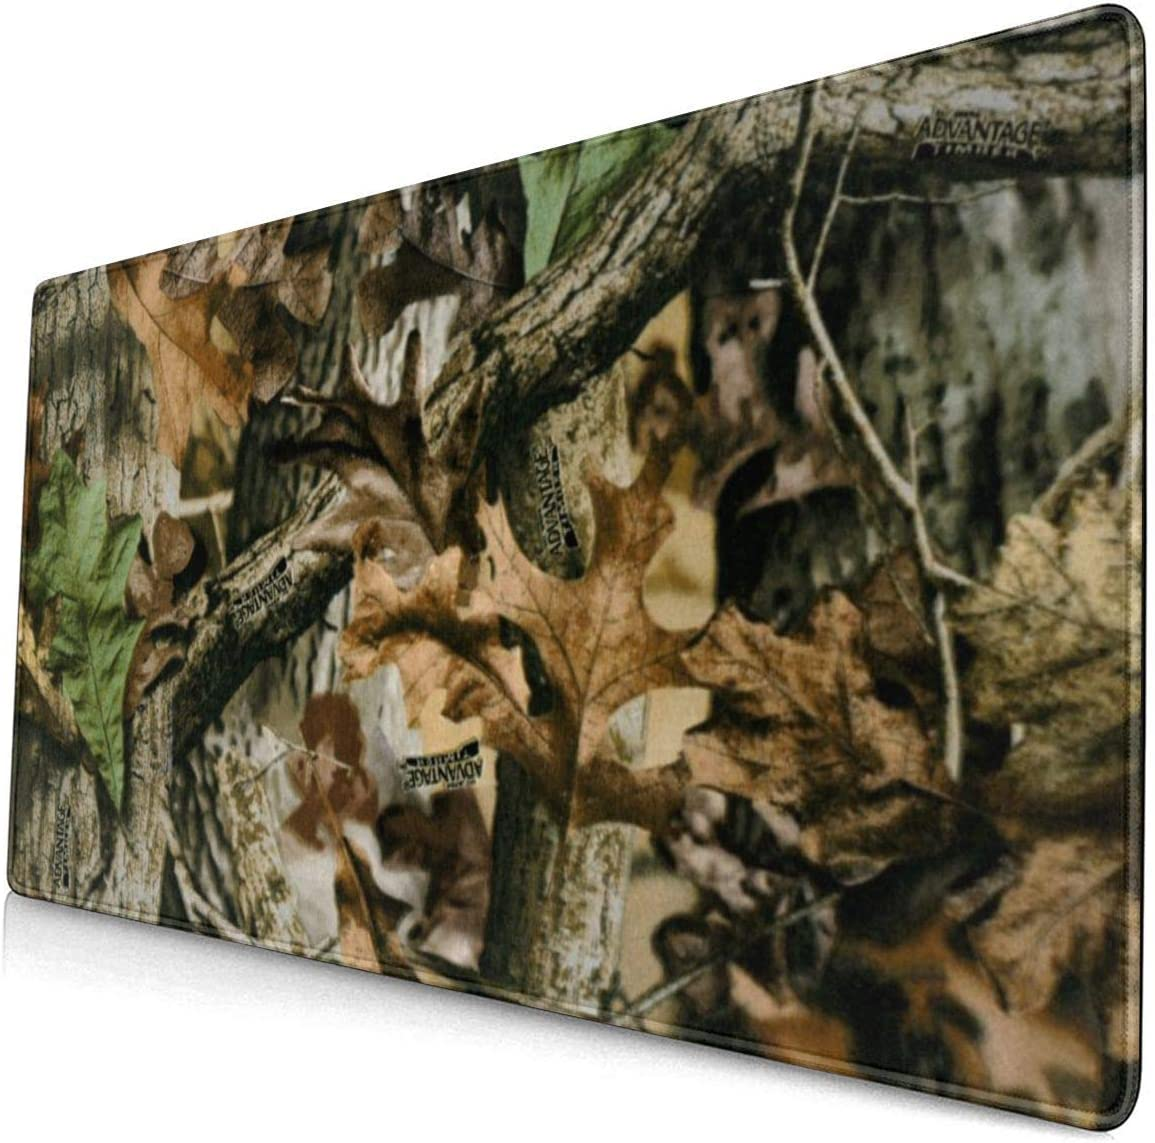 Office /& Home 29.5x15.7In Extended Gaming Mouse Pad with Stitched Edges-Free Realtree Camo Large XXL Professional Mousepad Waterproof Desk Pad Keyboard Mat with Non-Slip Base for Work /& Gaming